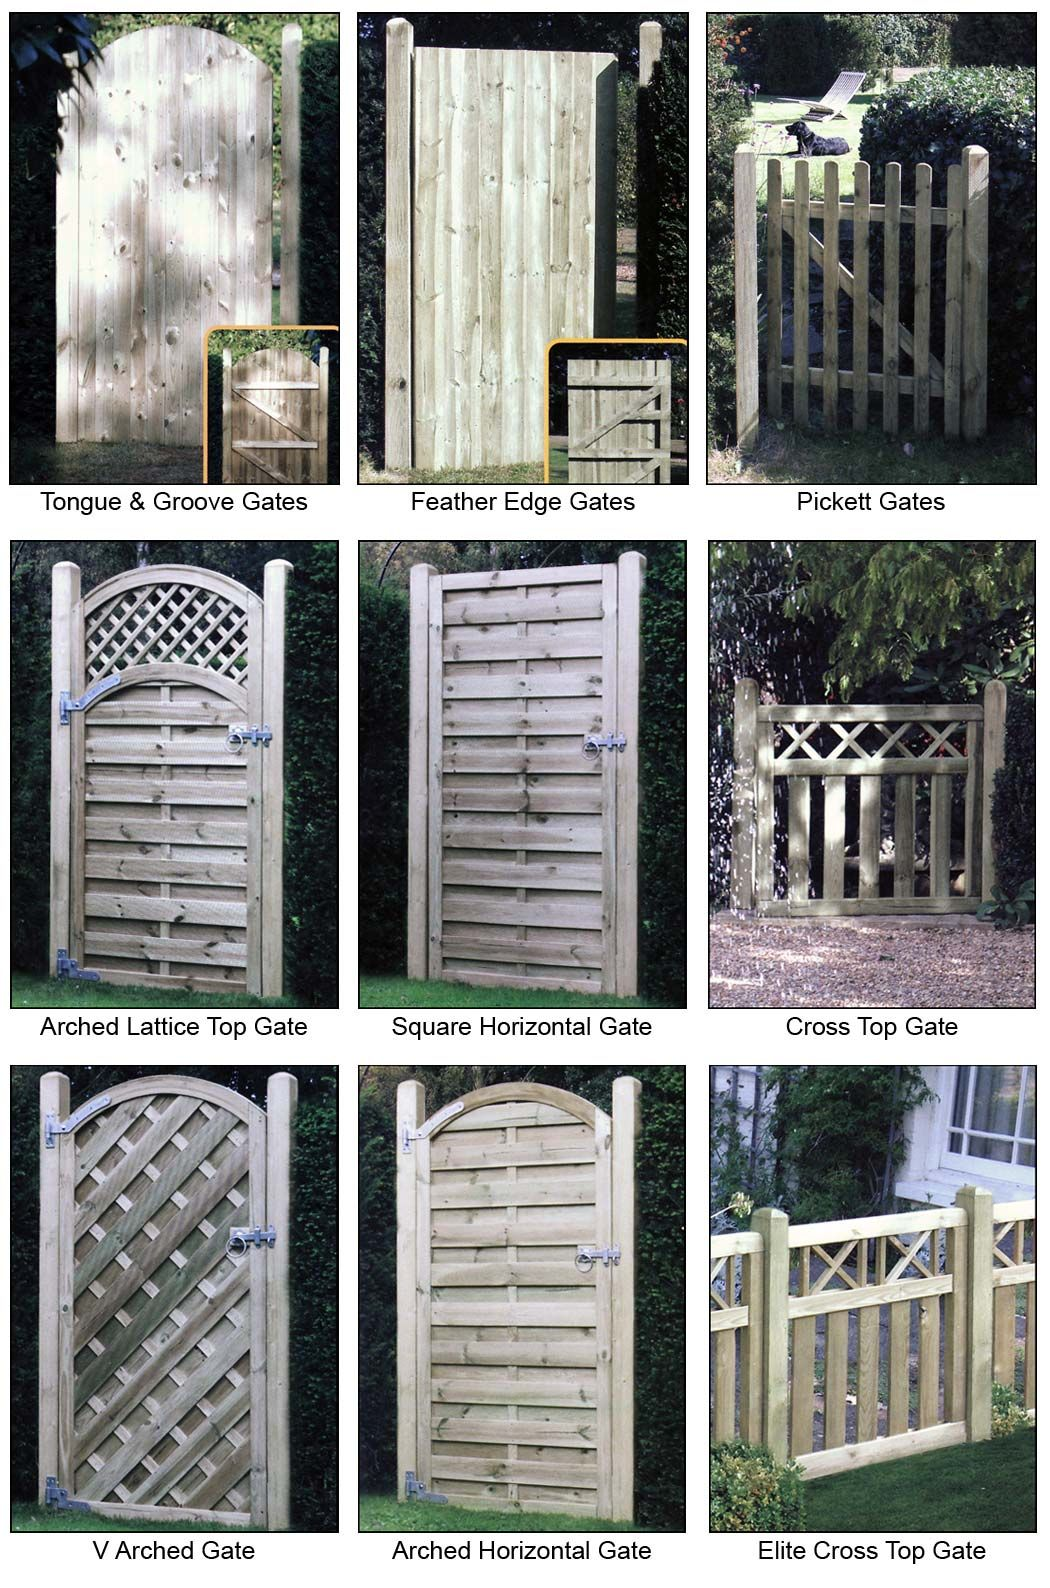 Garden Gate Ideas Homemaker 20 1 Special Garden Gate Some - garden gate designs usa